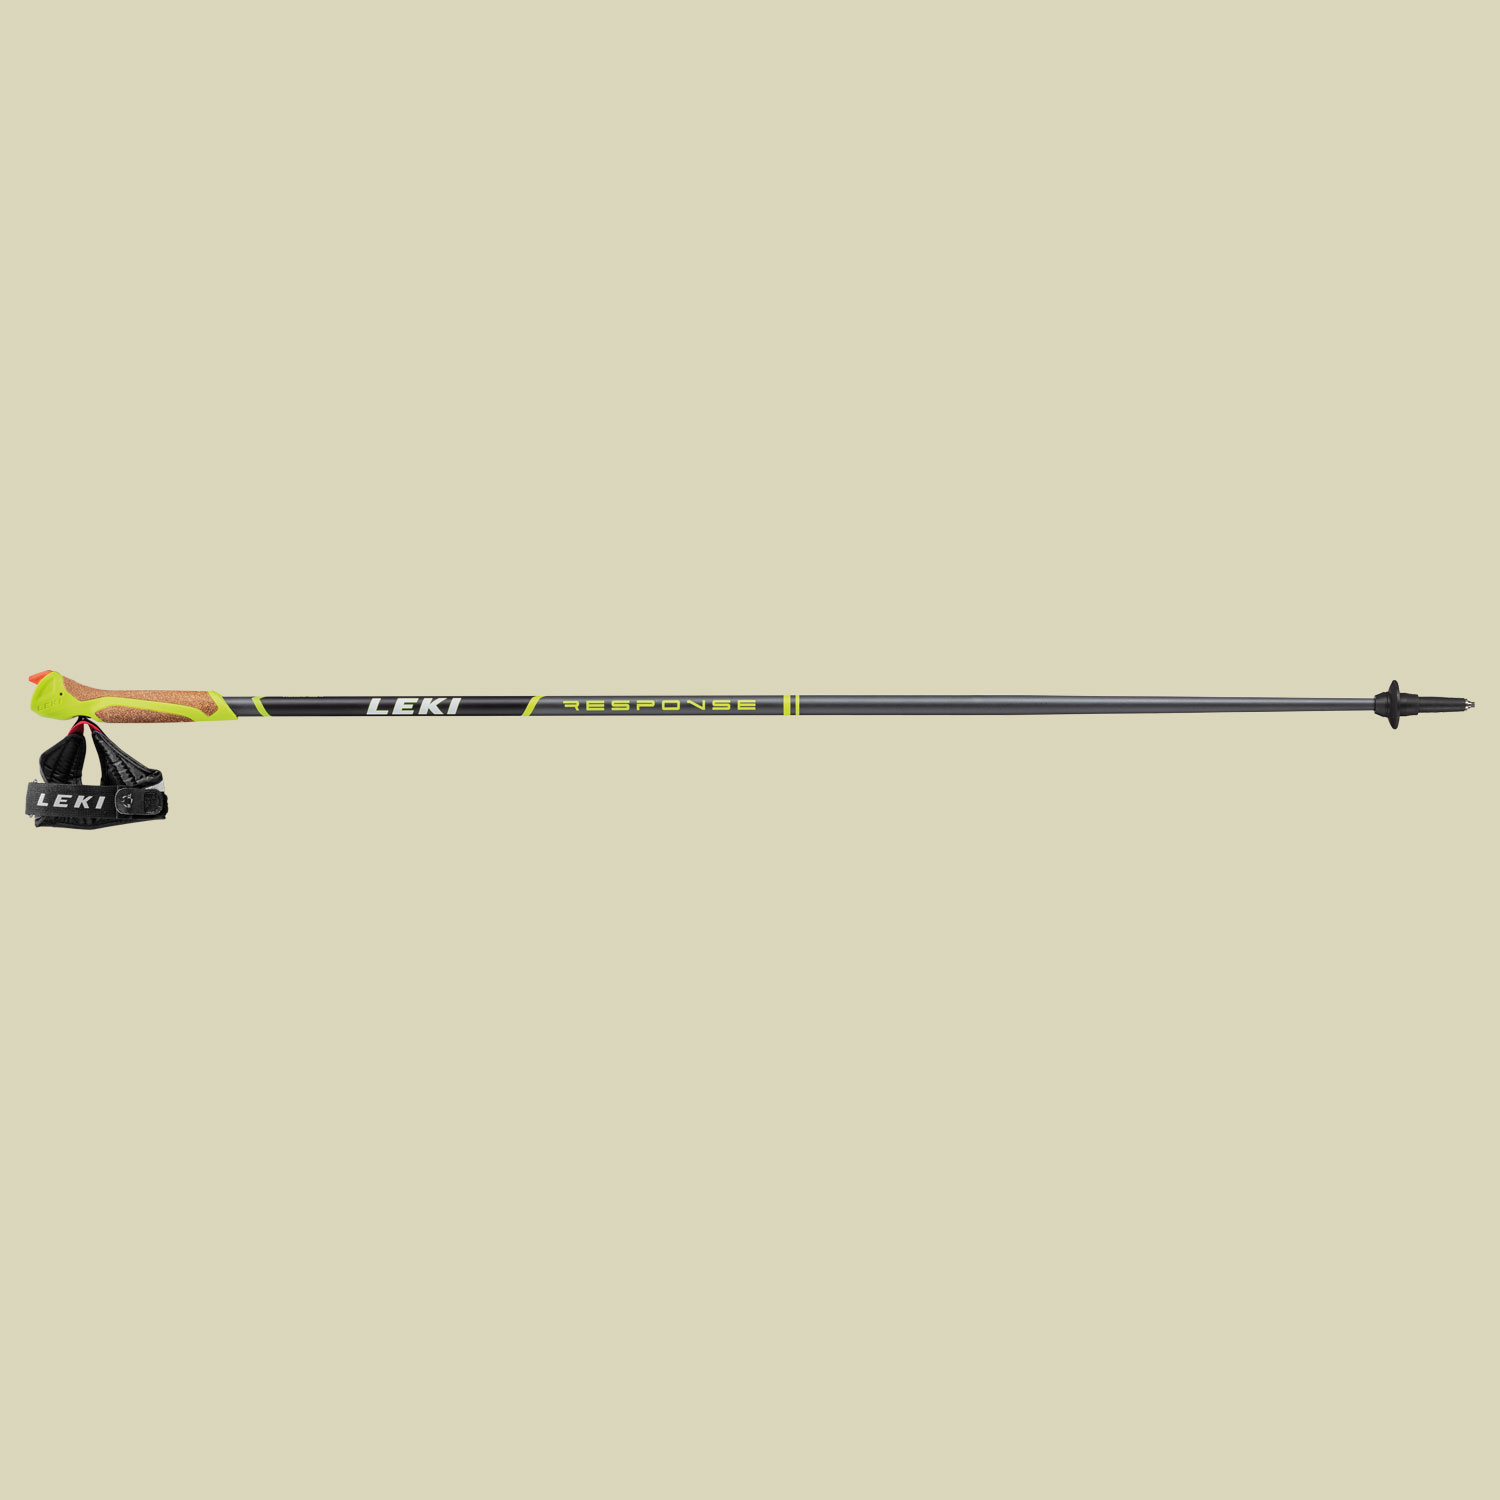 Leki Response Nordic Walking Stock Länge 105 cm anthracite-black-green von Leki